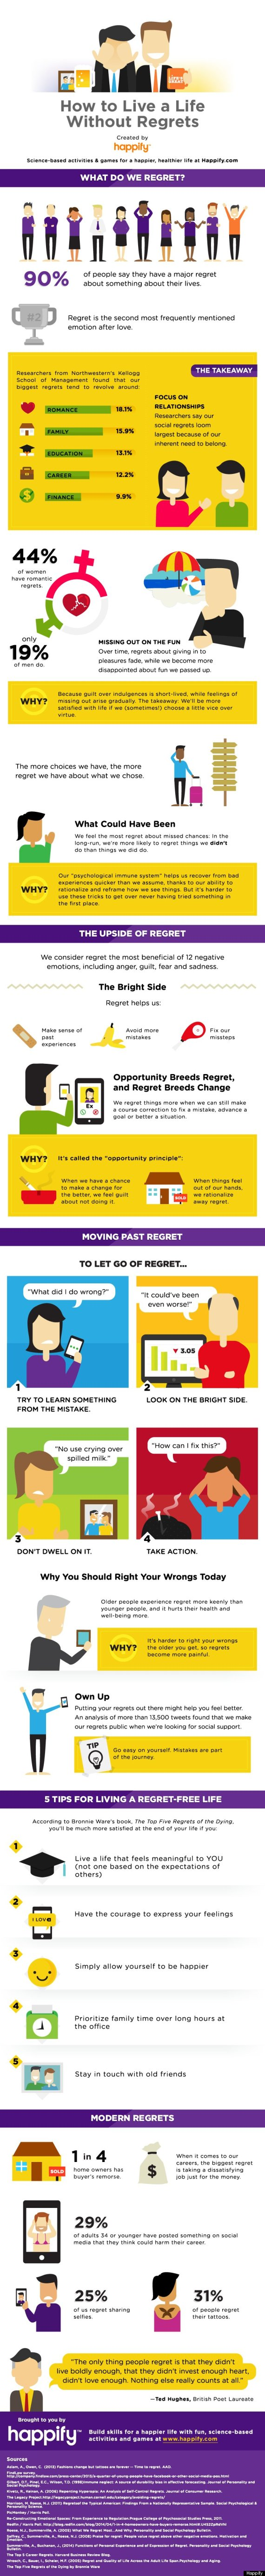 regrets infographic